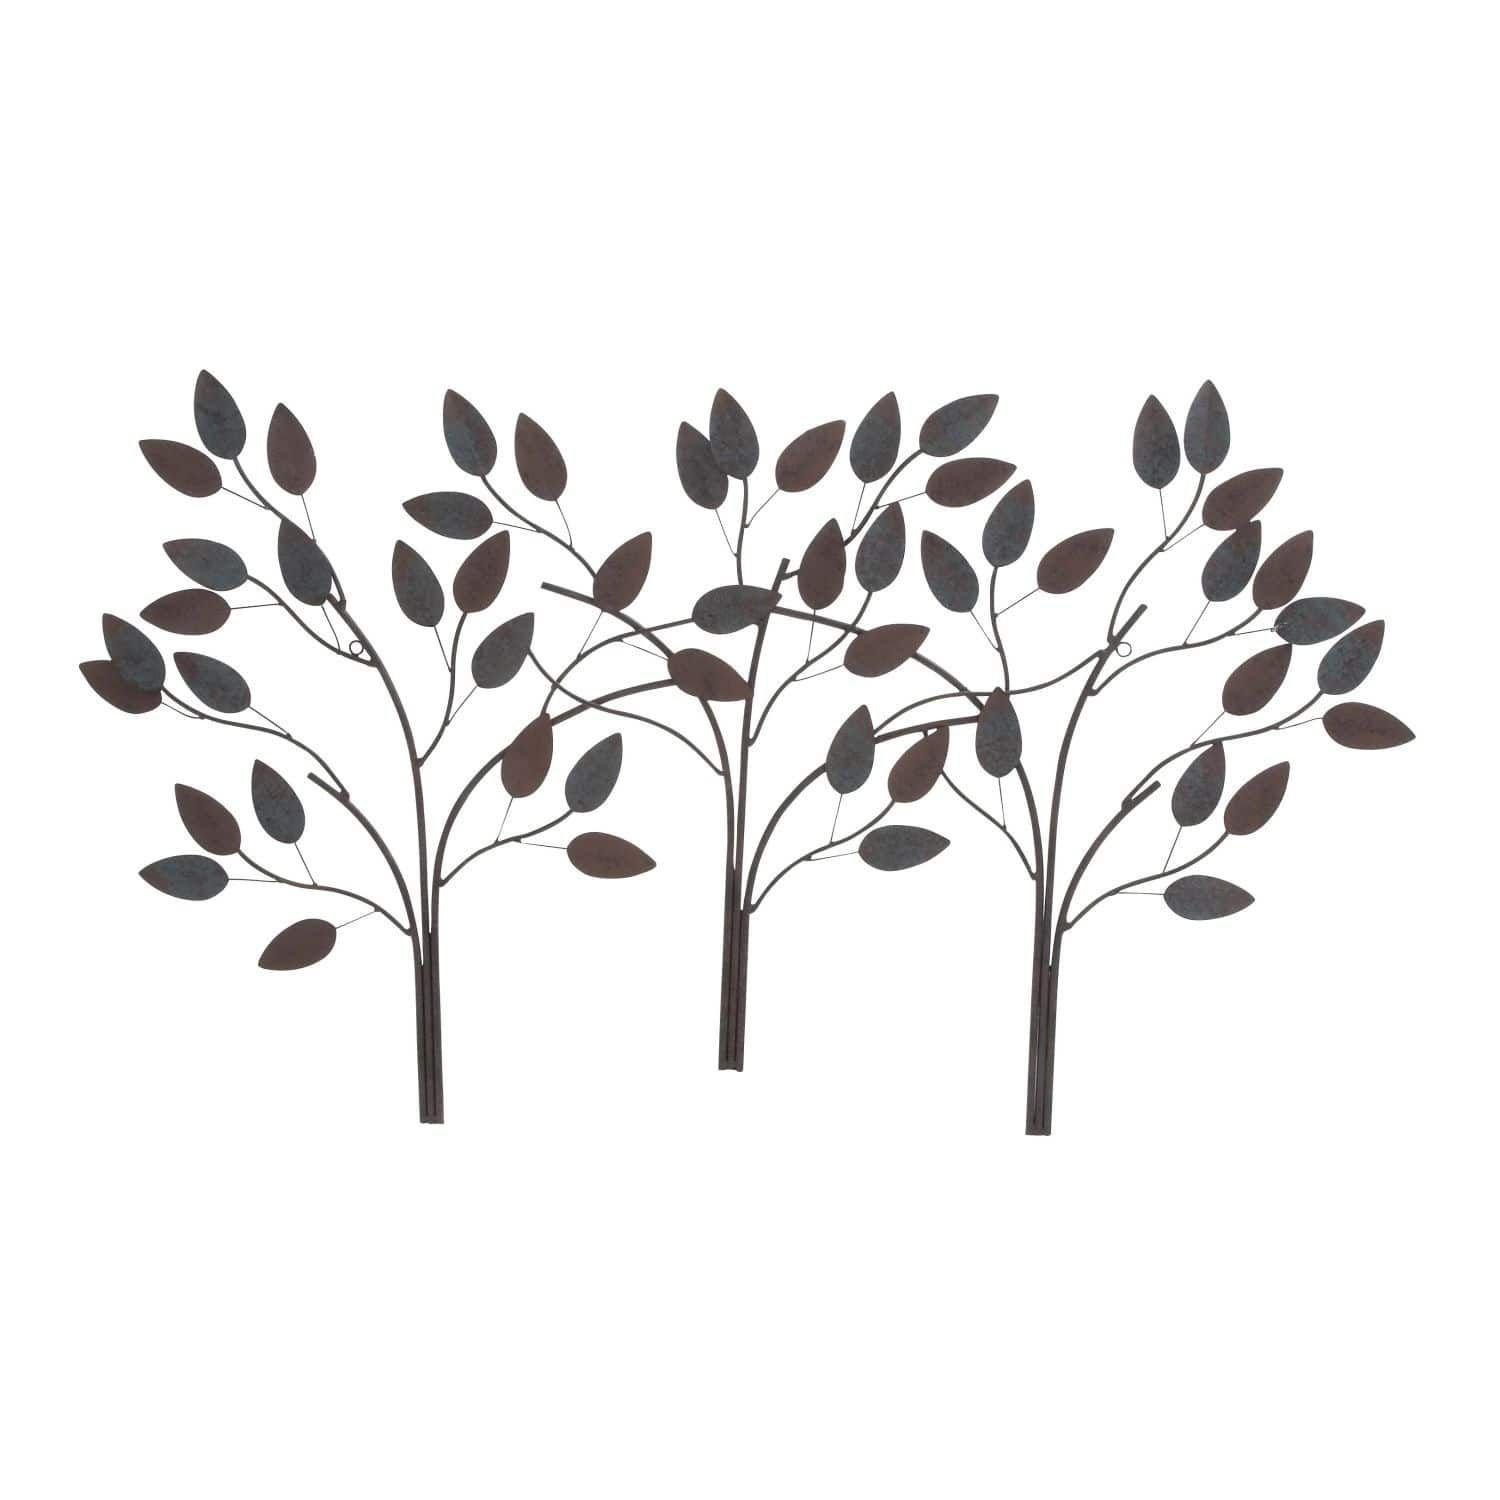 Studio 350 Metal Leaf Wall Decor 48 Inches Wide, 27 Inches Within Desford Leaf Wall Decor (View 4 of 30)